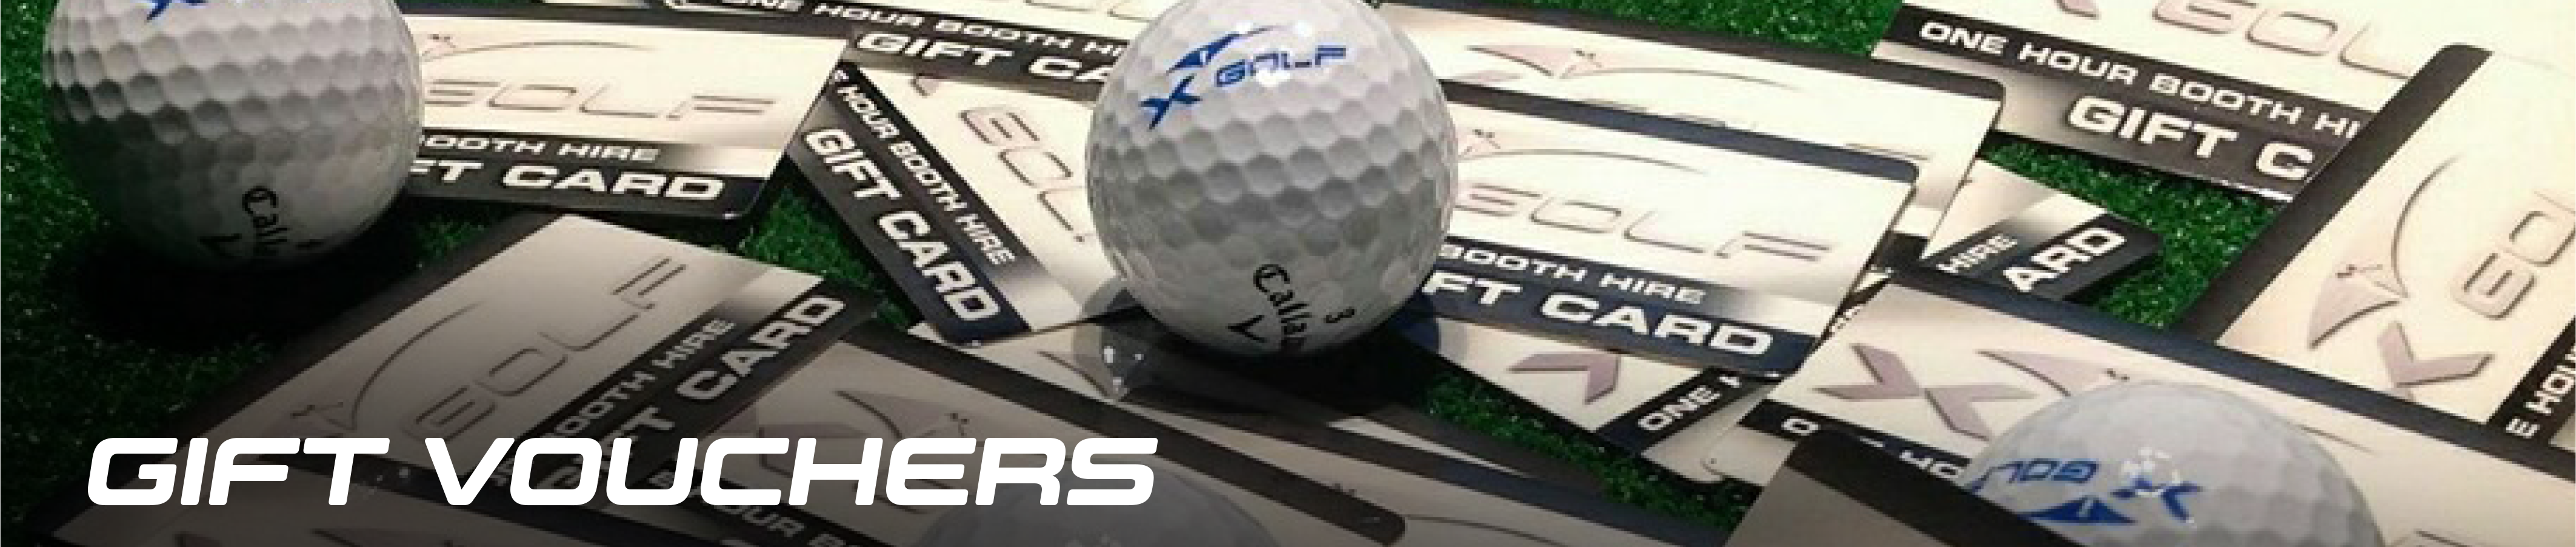 X-Golf Gift Vouchers and Ball